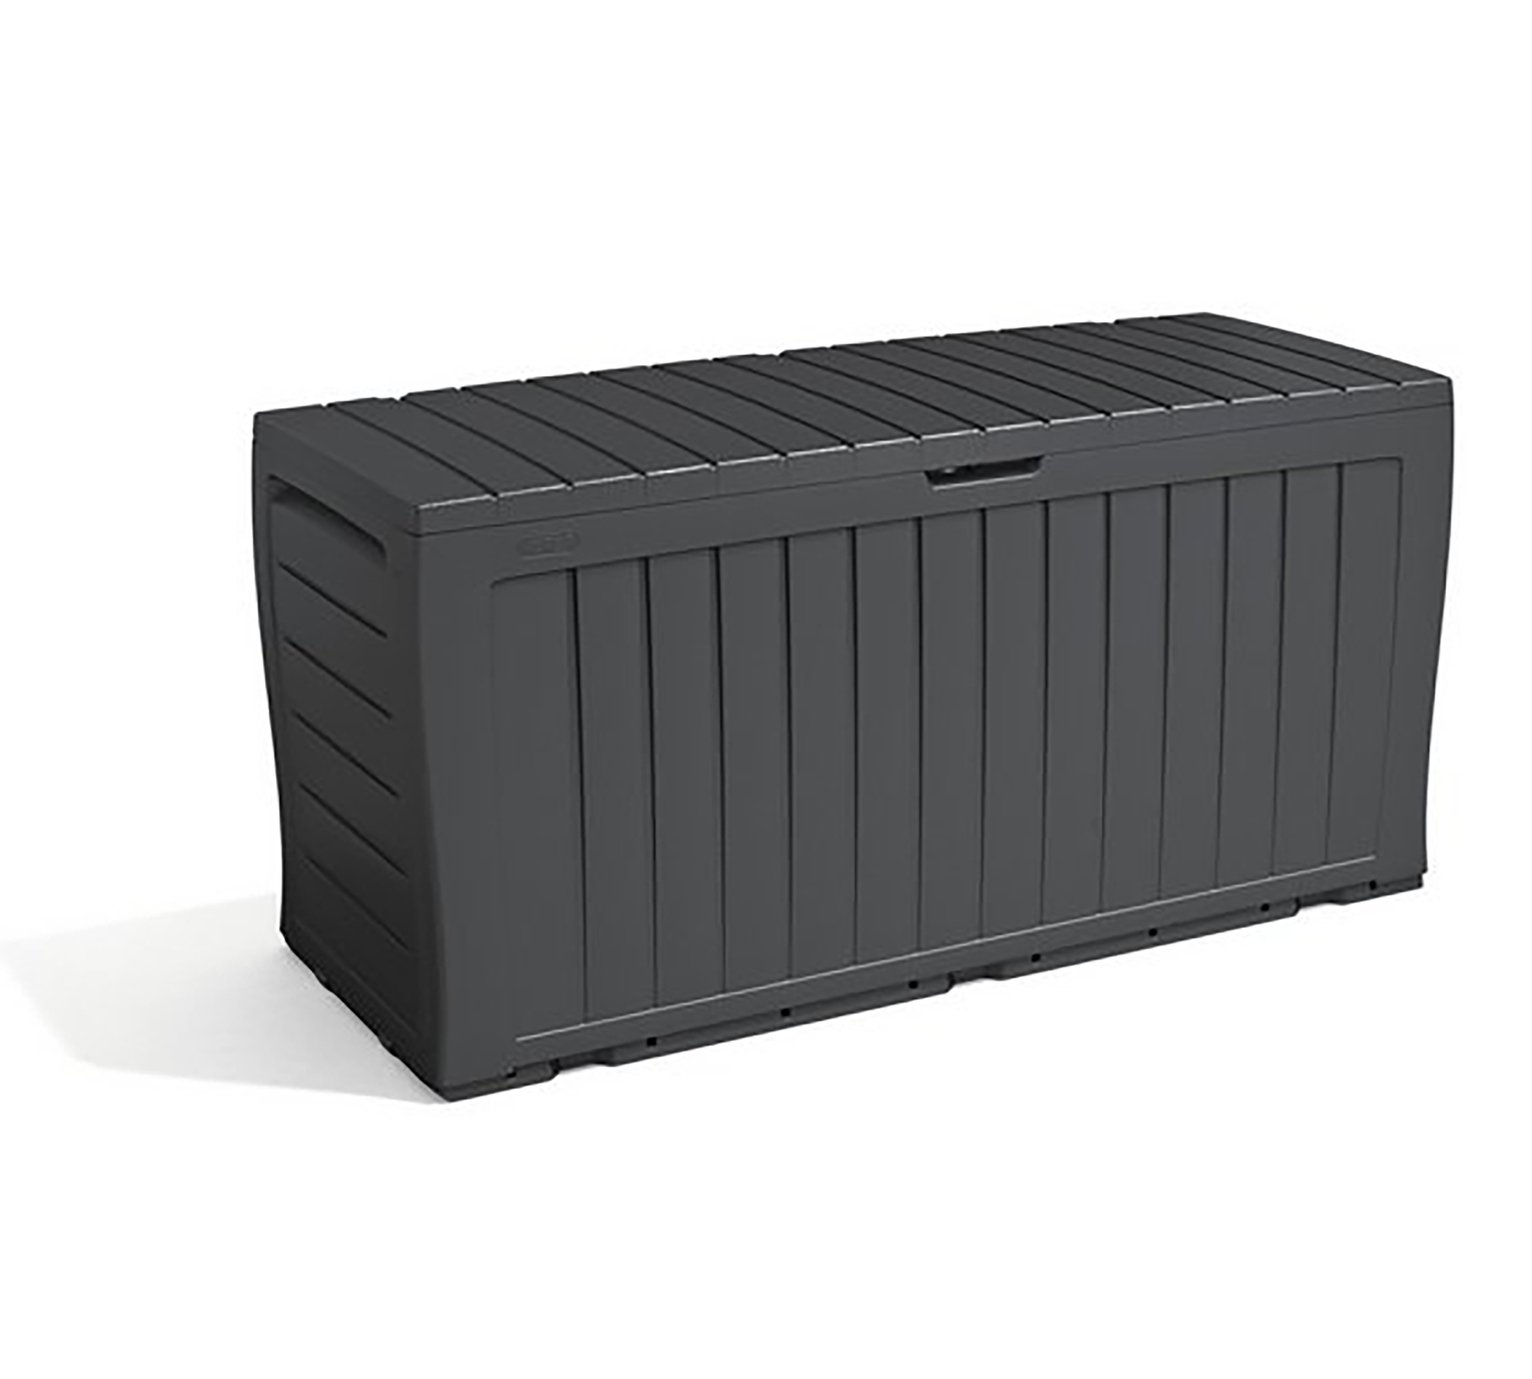 lockable storage boxes - Lockable Storage Box